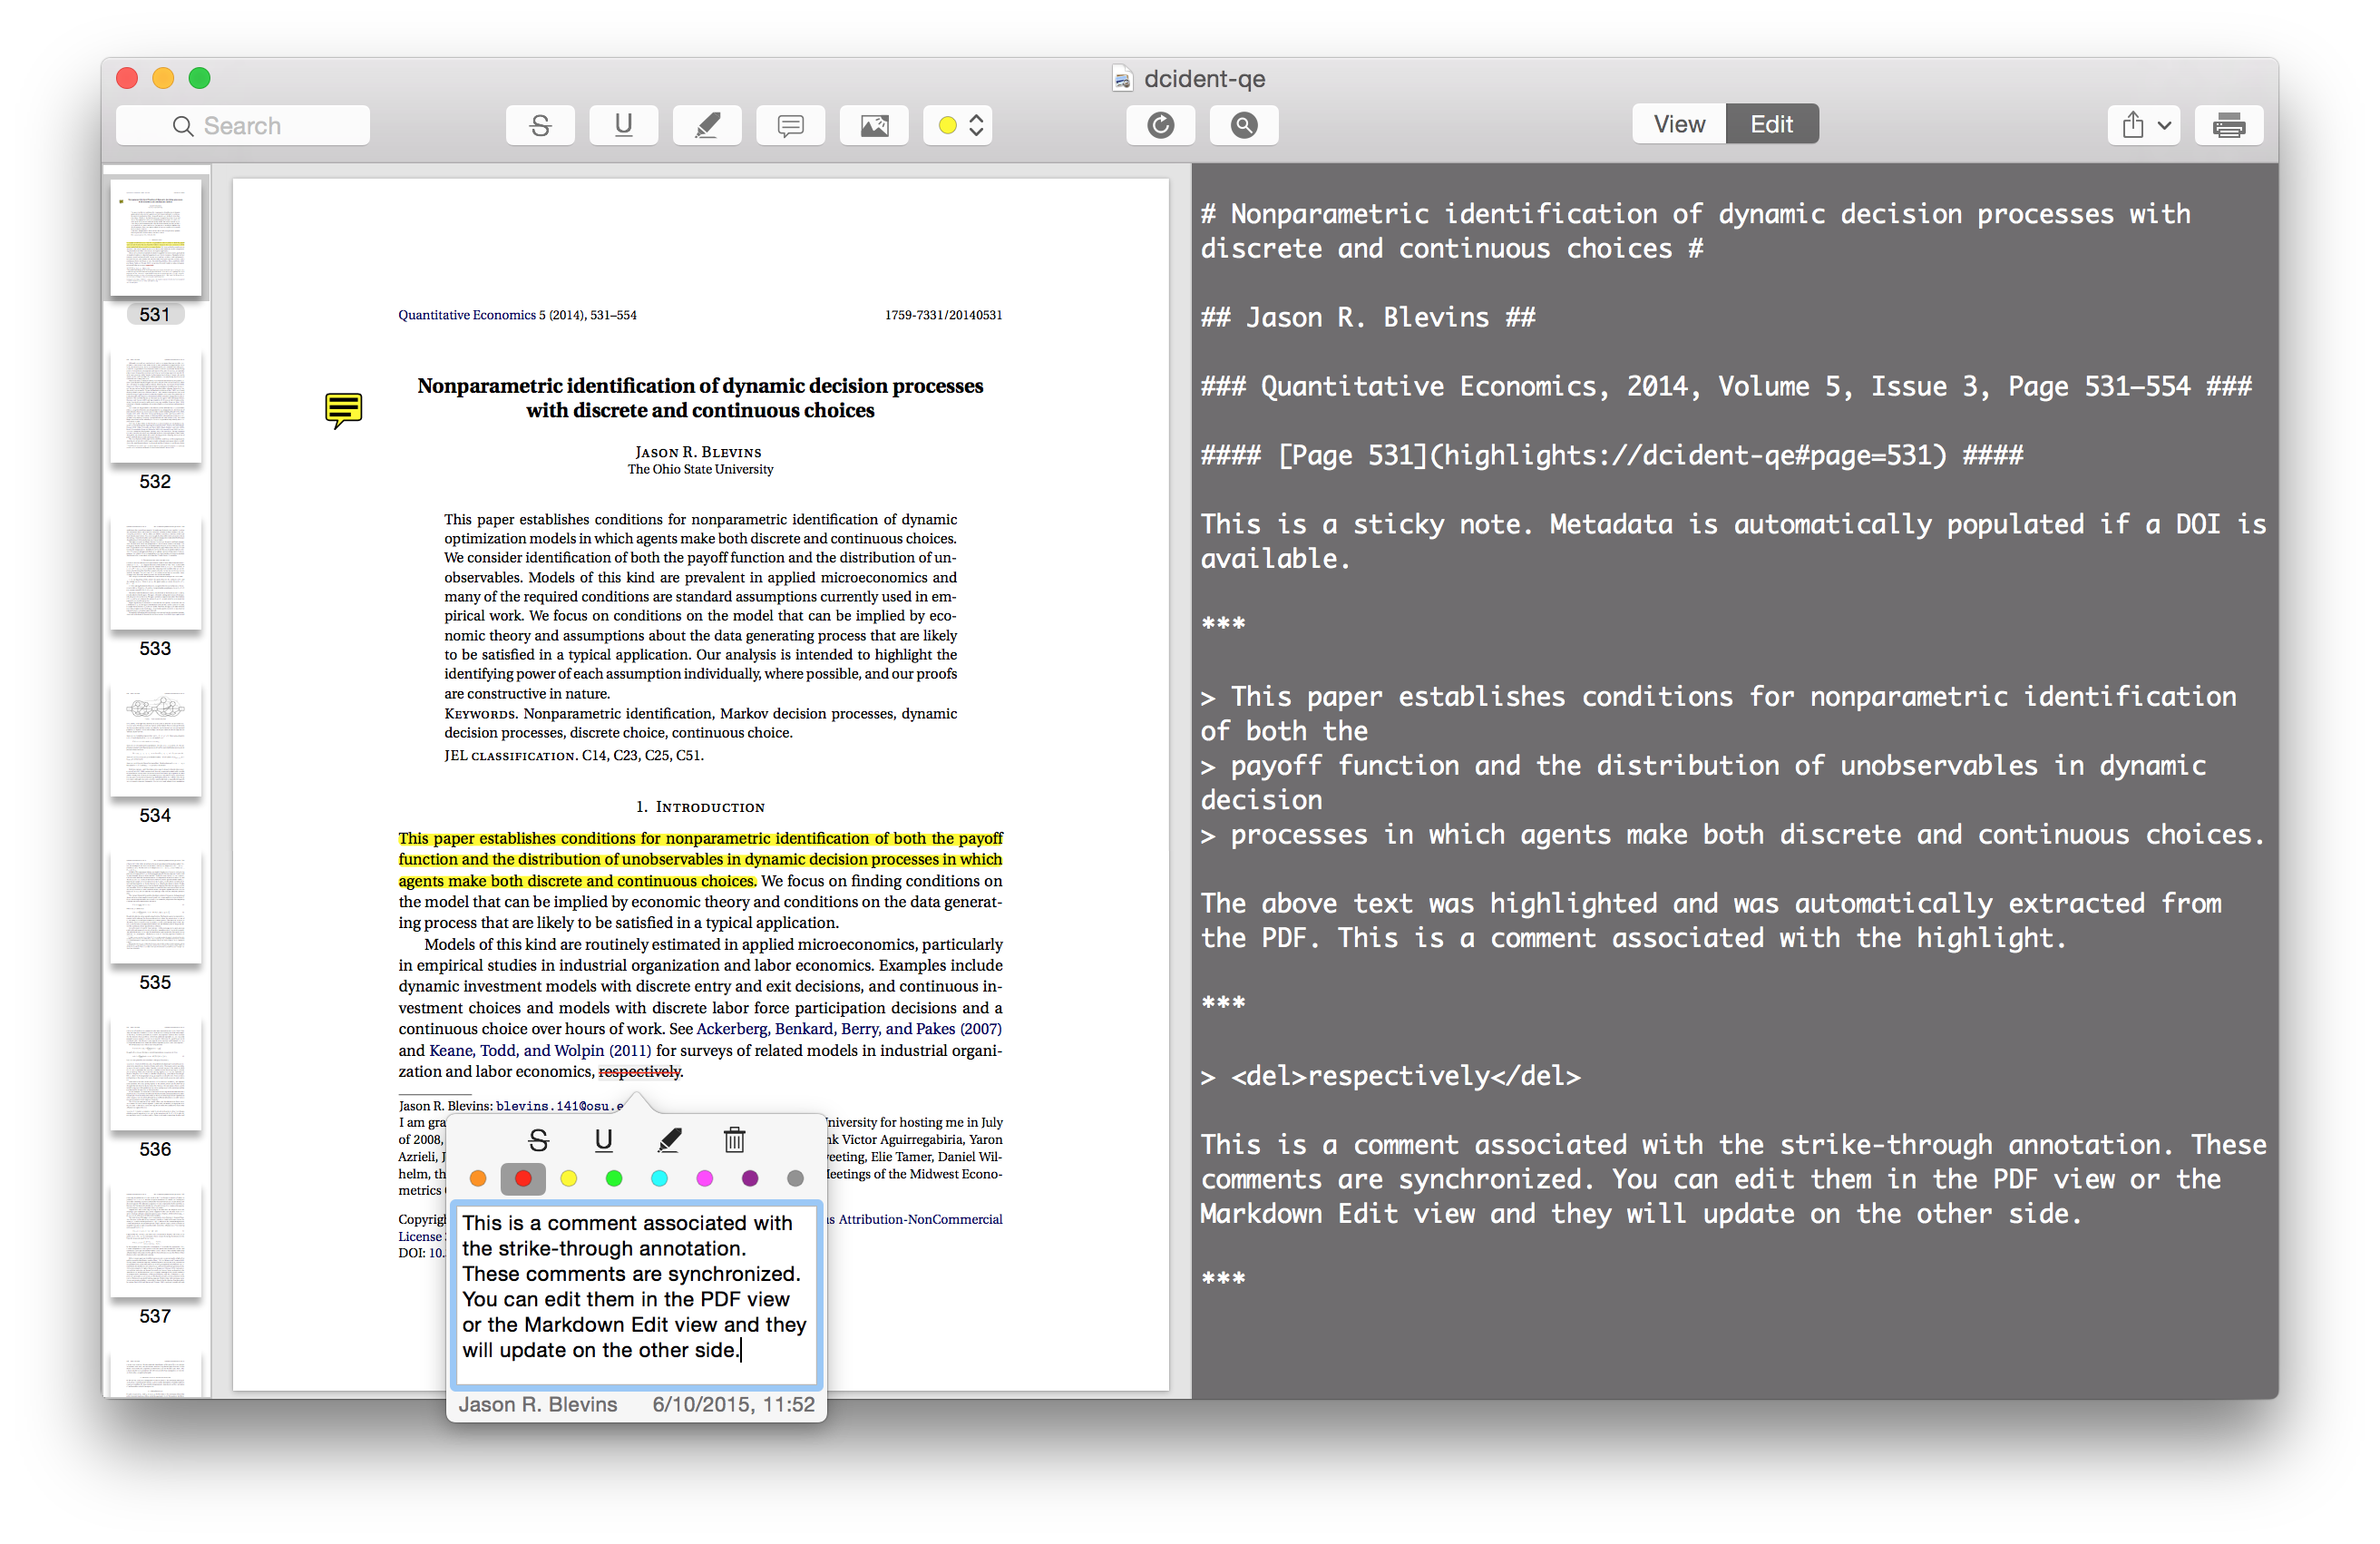 Highlights: A New App for Annotating PDFs, with Two-Way Markdown Sync